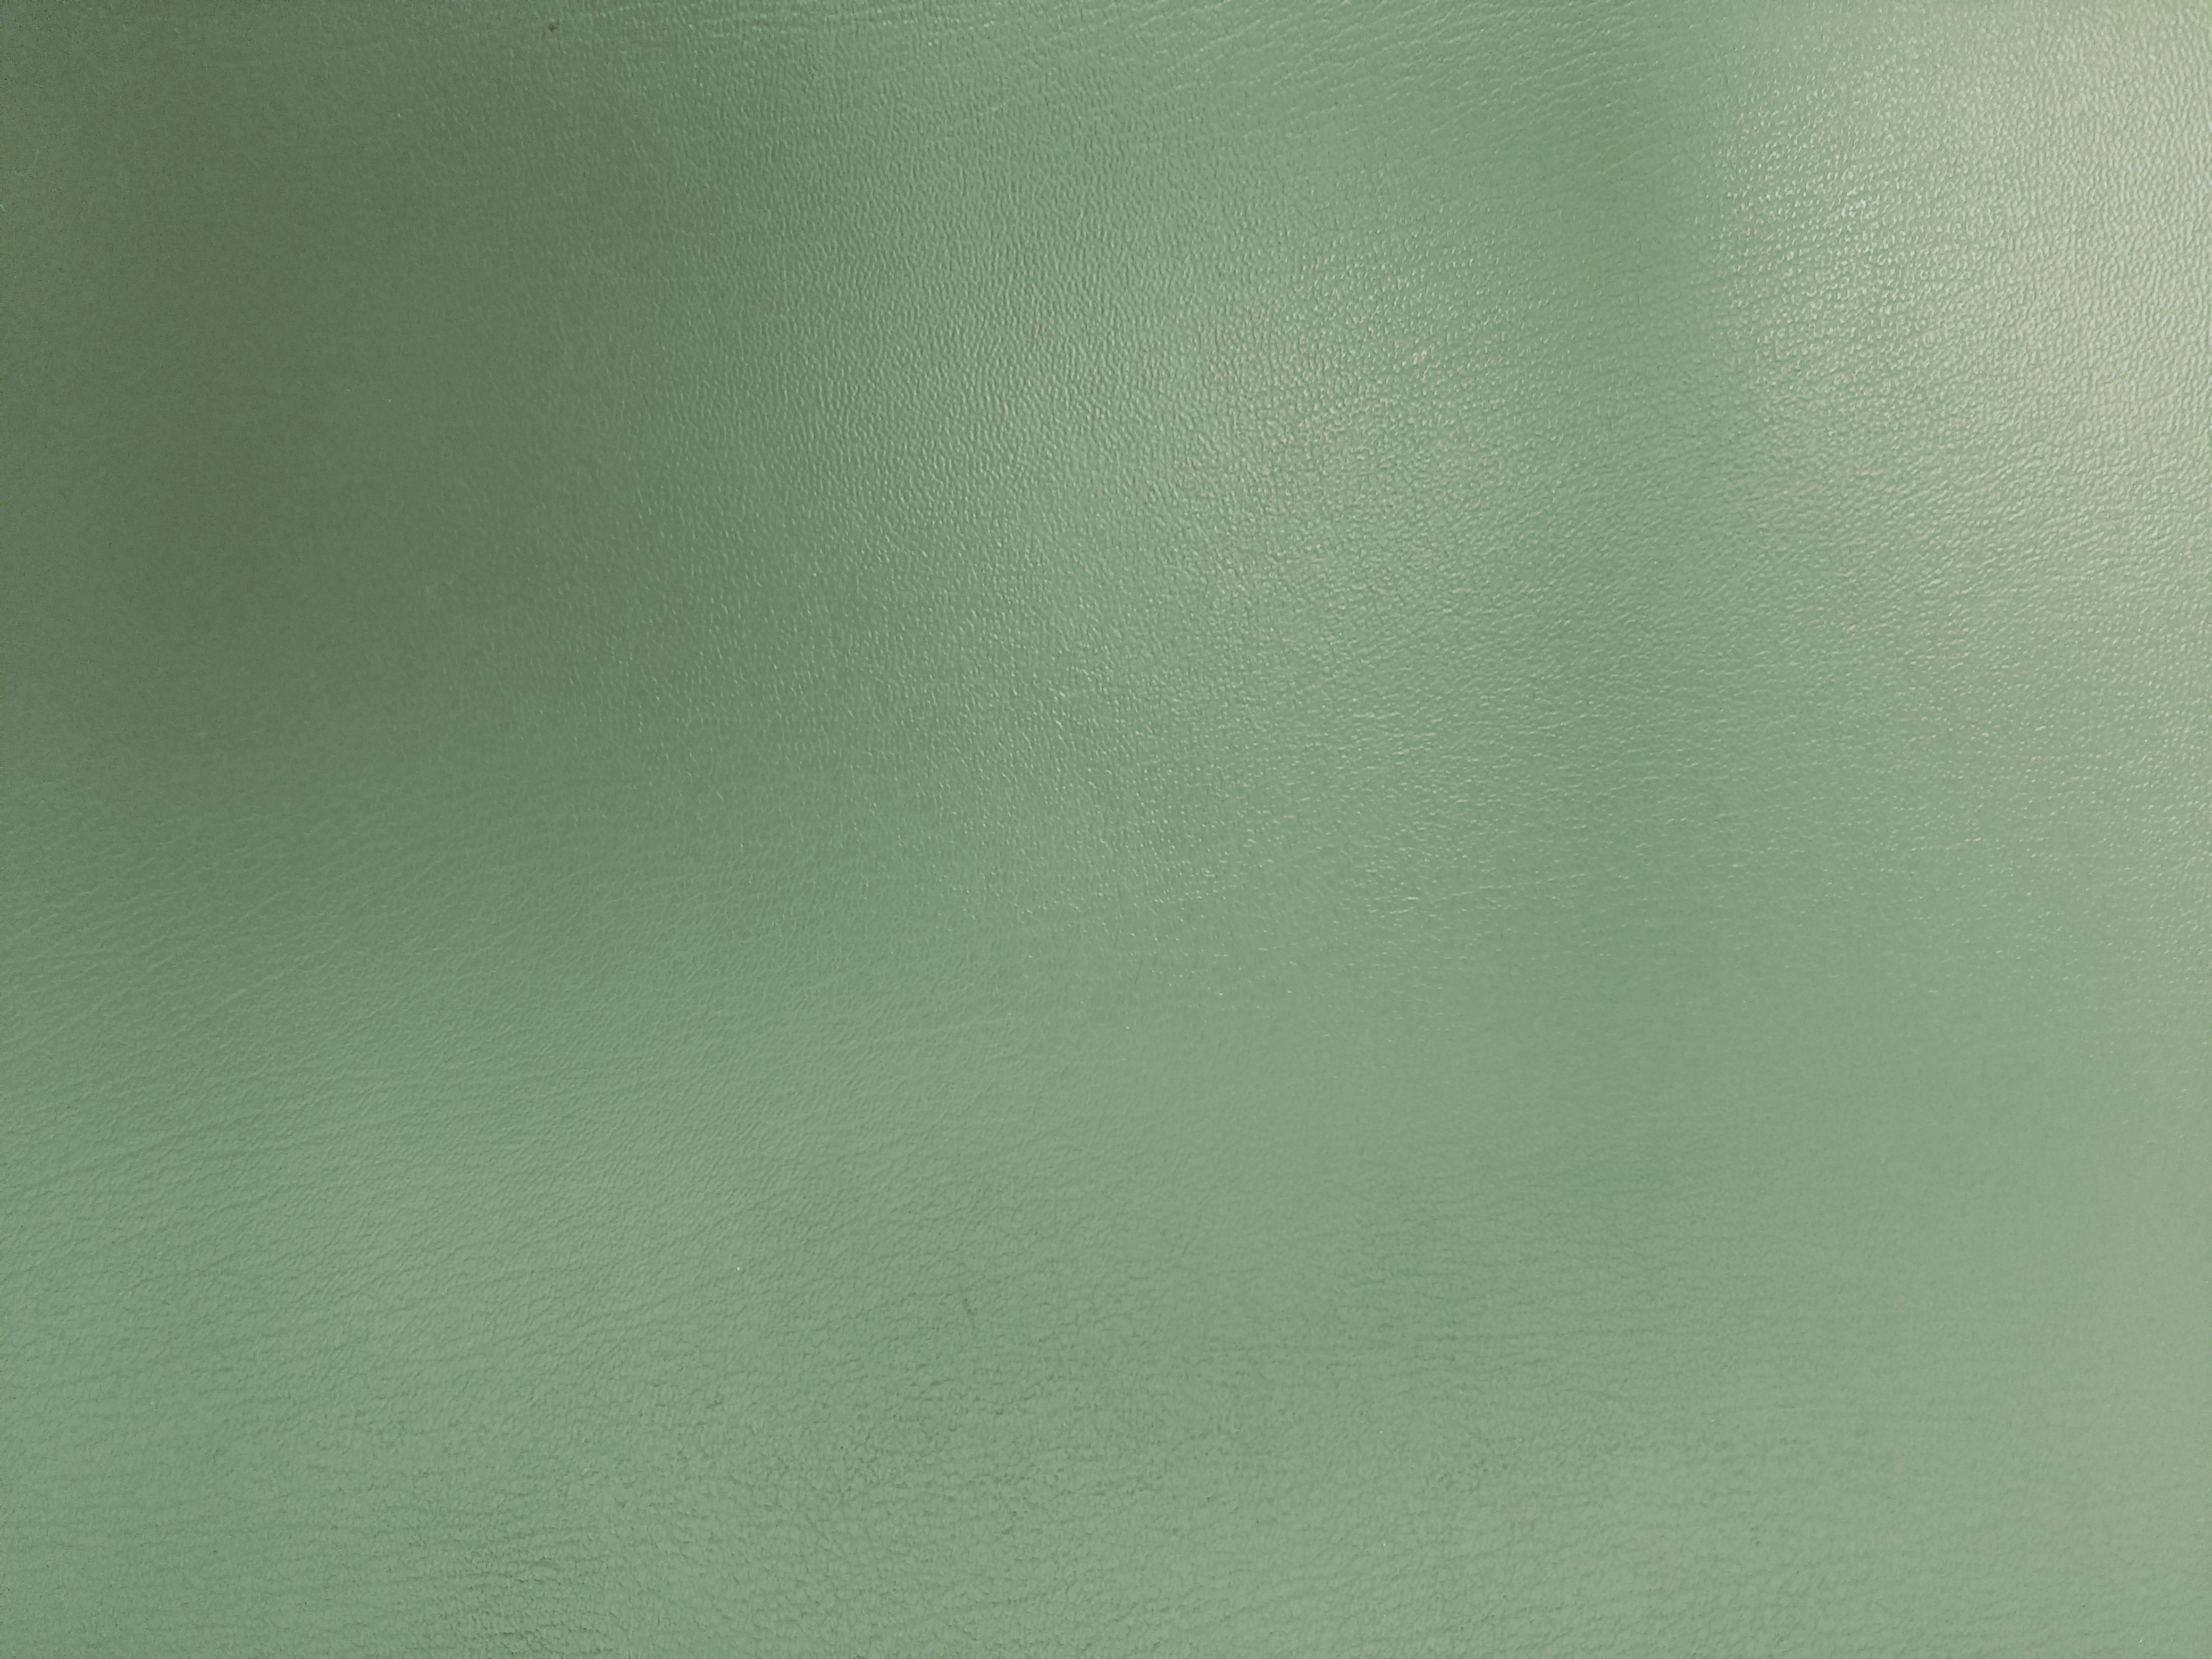 Sage Green Faux Leather Texture Picture Free Photograph